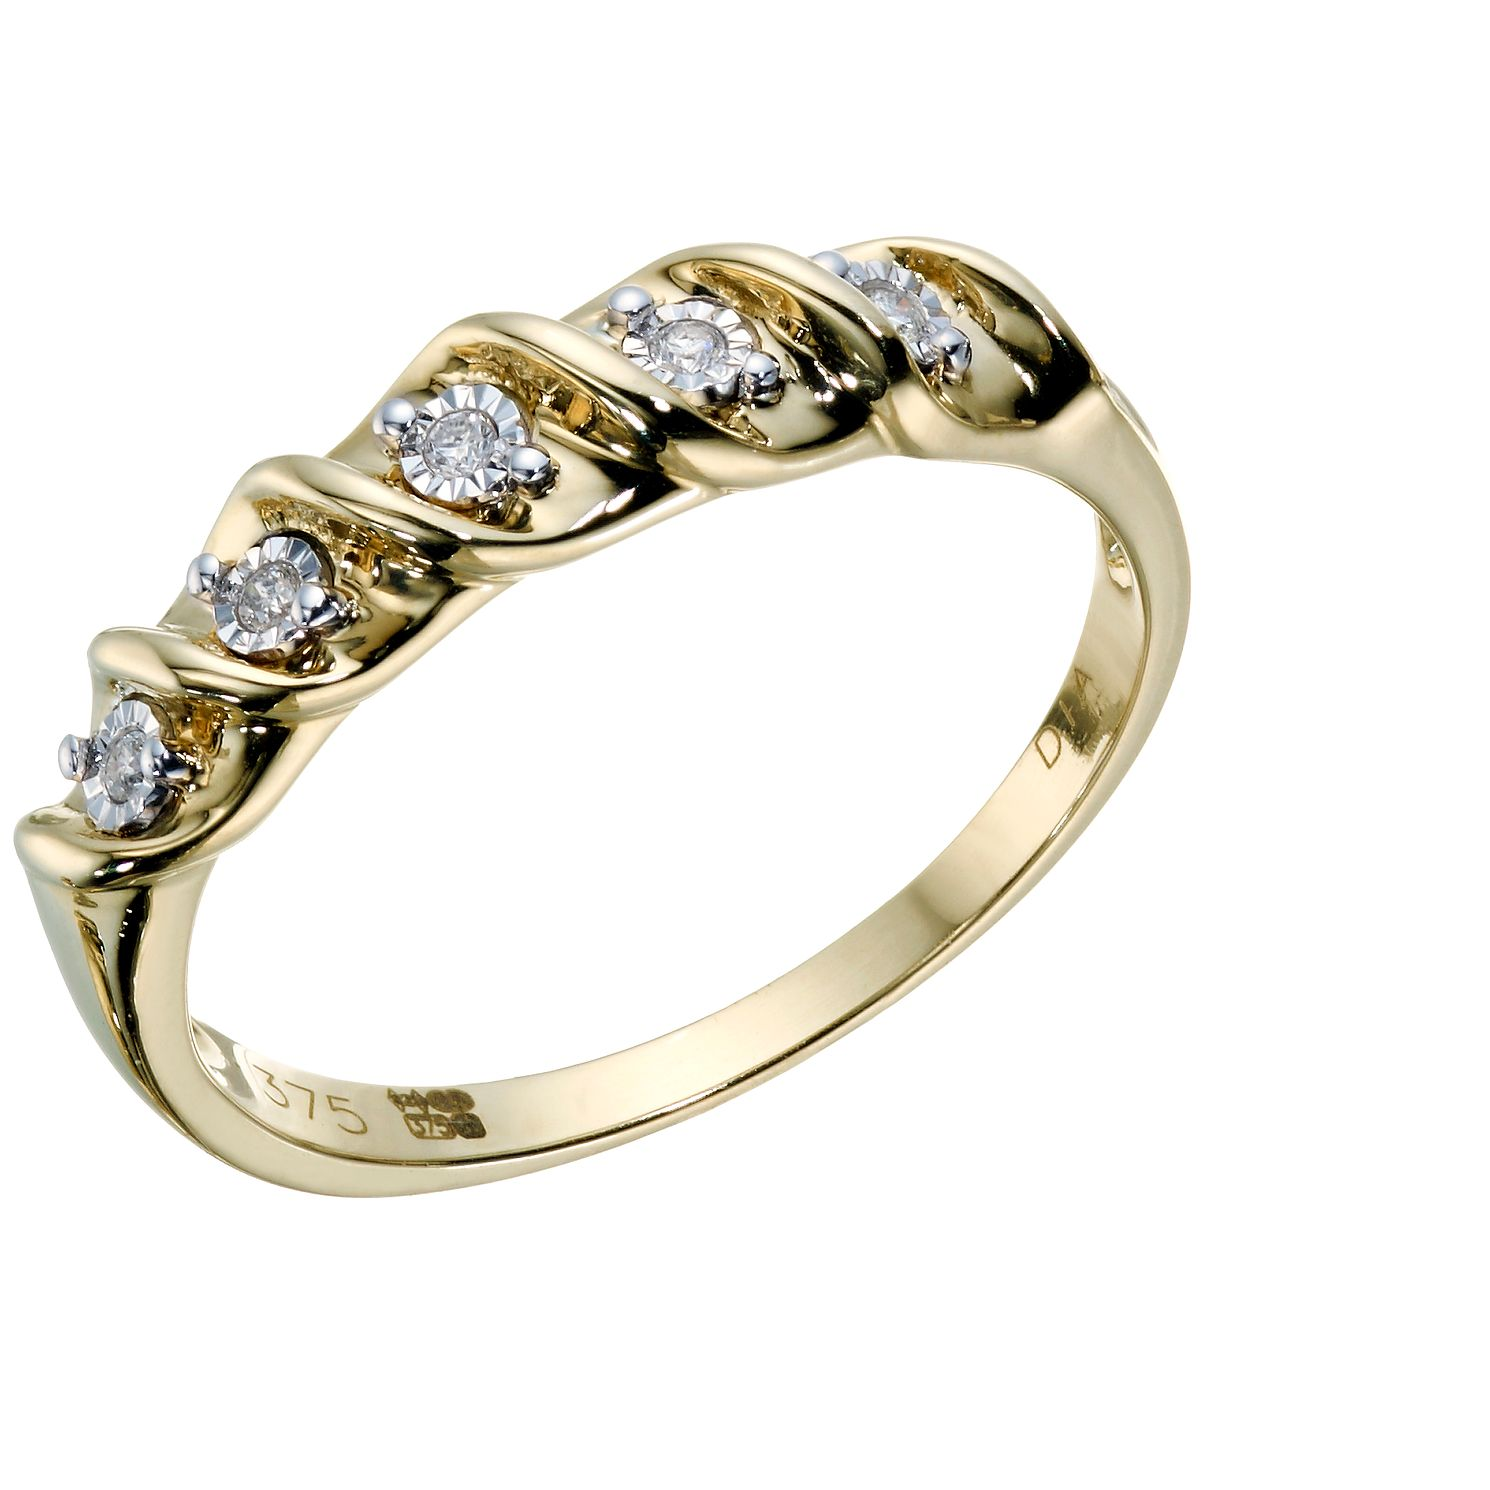 jewellery meteorite eternity ring jewelry black diamond other enamel gold with in rings seymchan